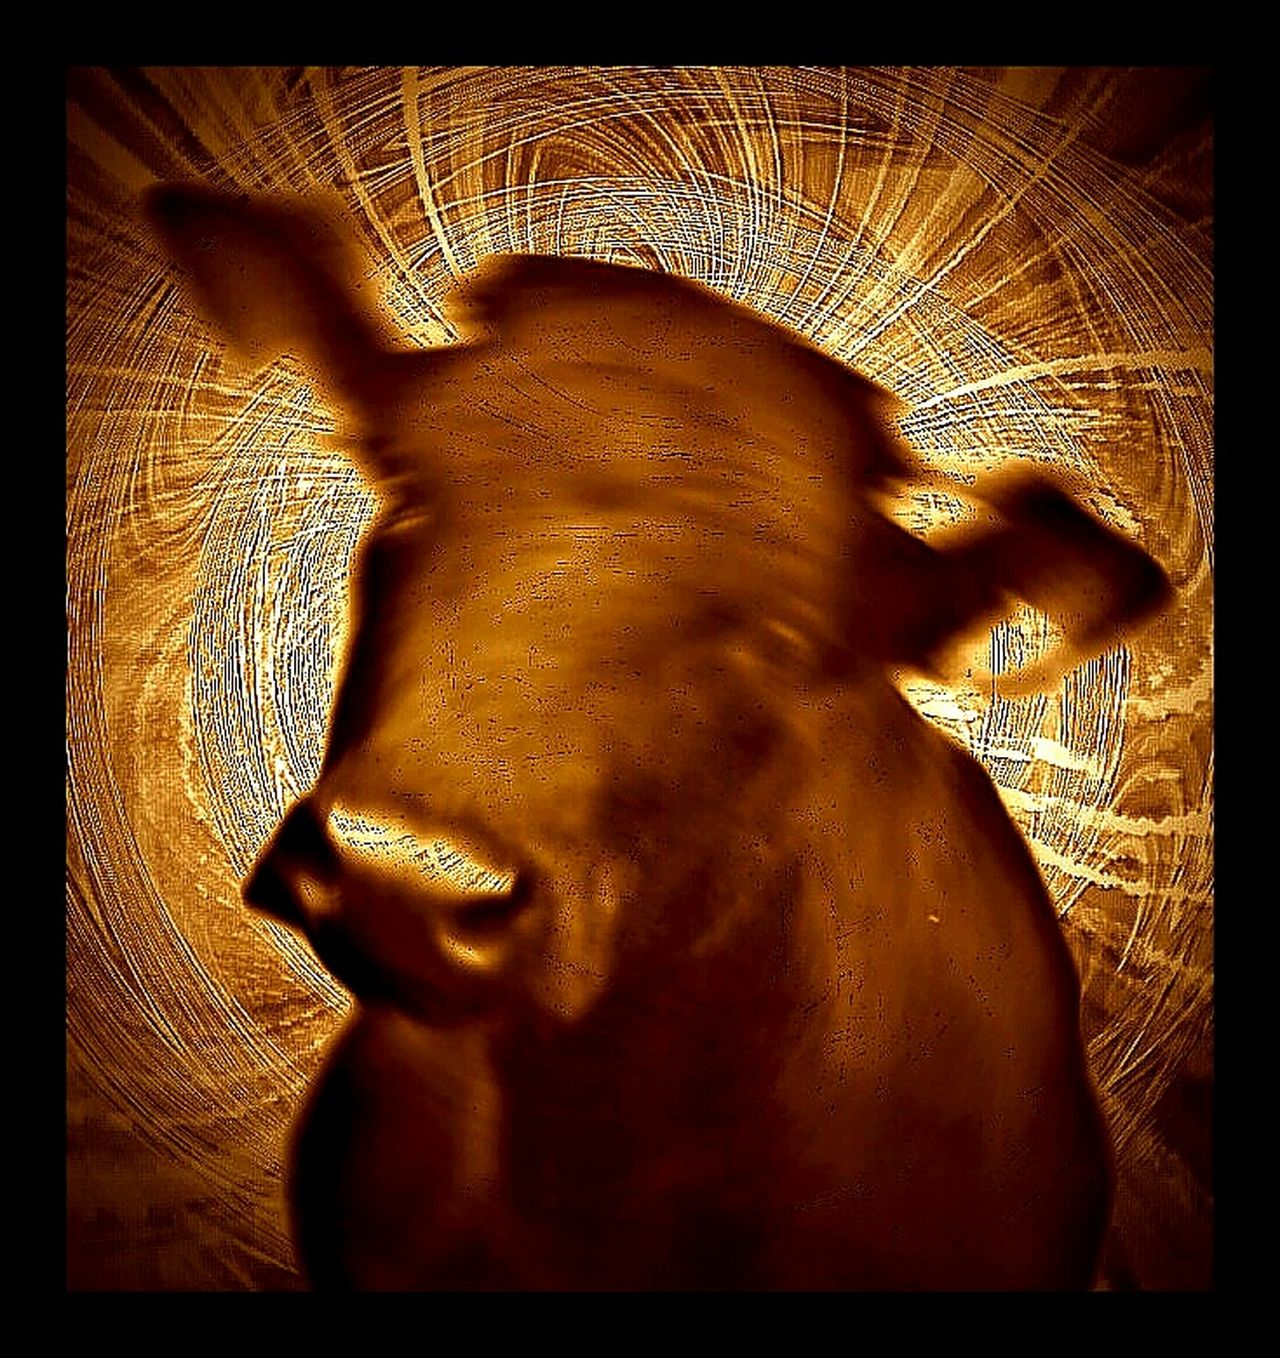 Check This Out My Moo For Moovember Feeling Inspired Portrait Of A Cow Portrait Of A Friend No Edit No Fun Creative Power Present For My Special Friend Humor My Mo For Movember Showcase: November